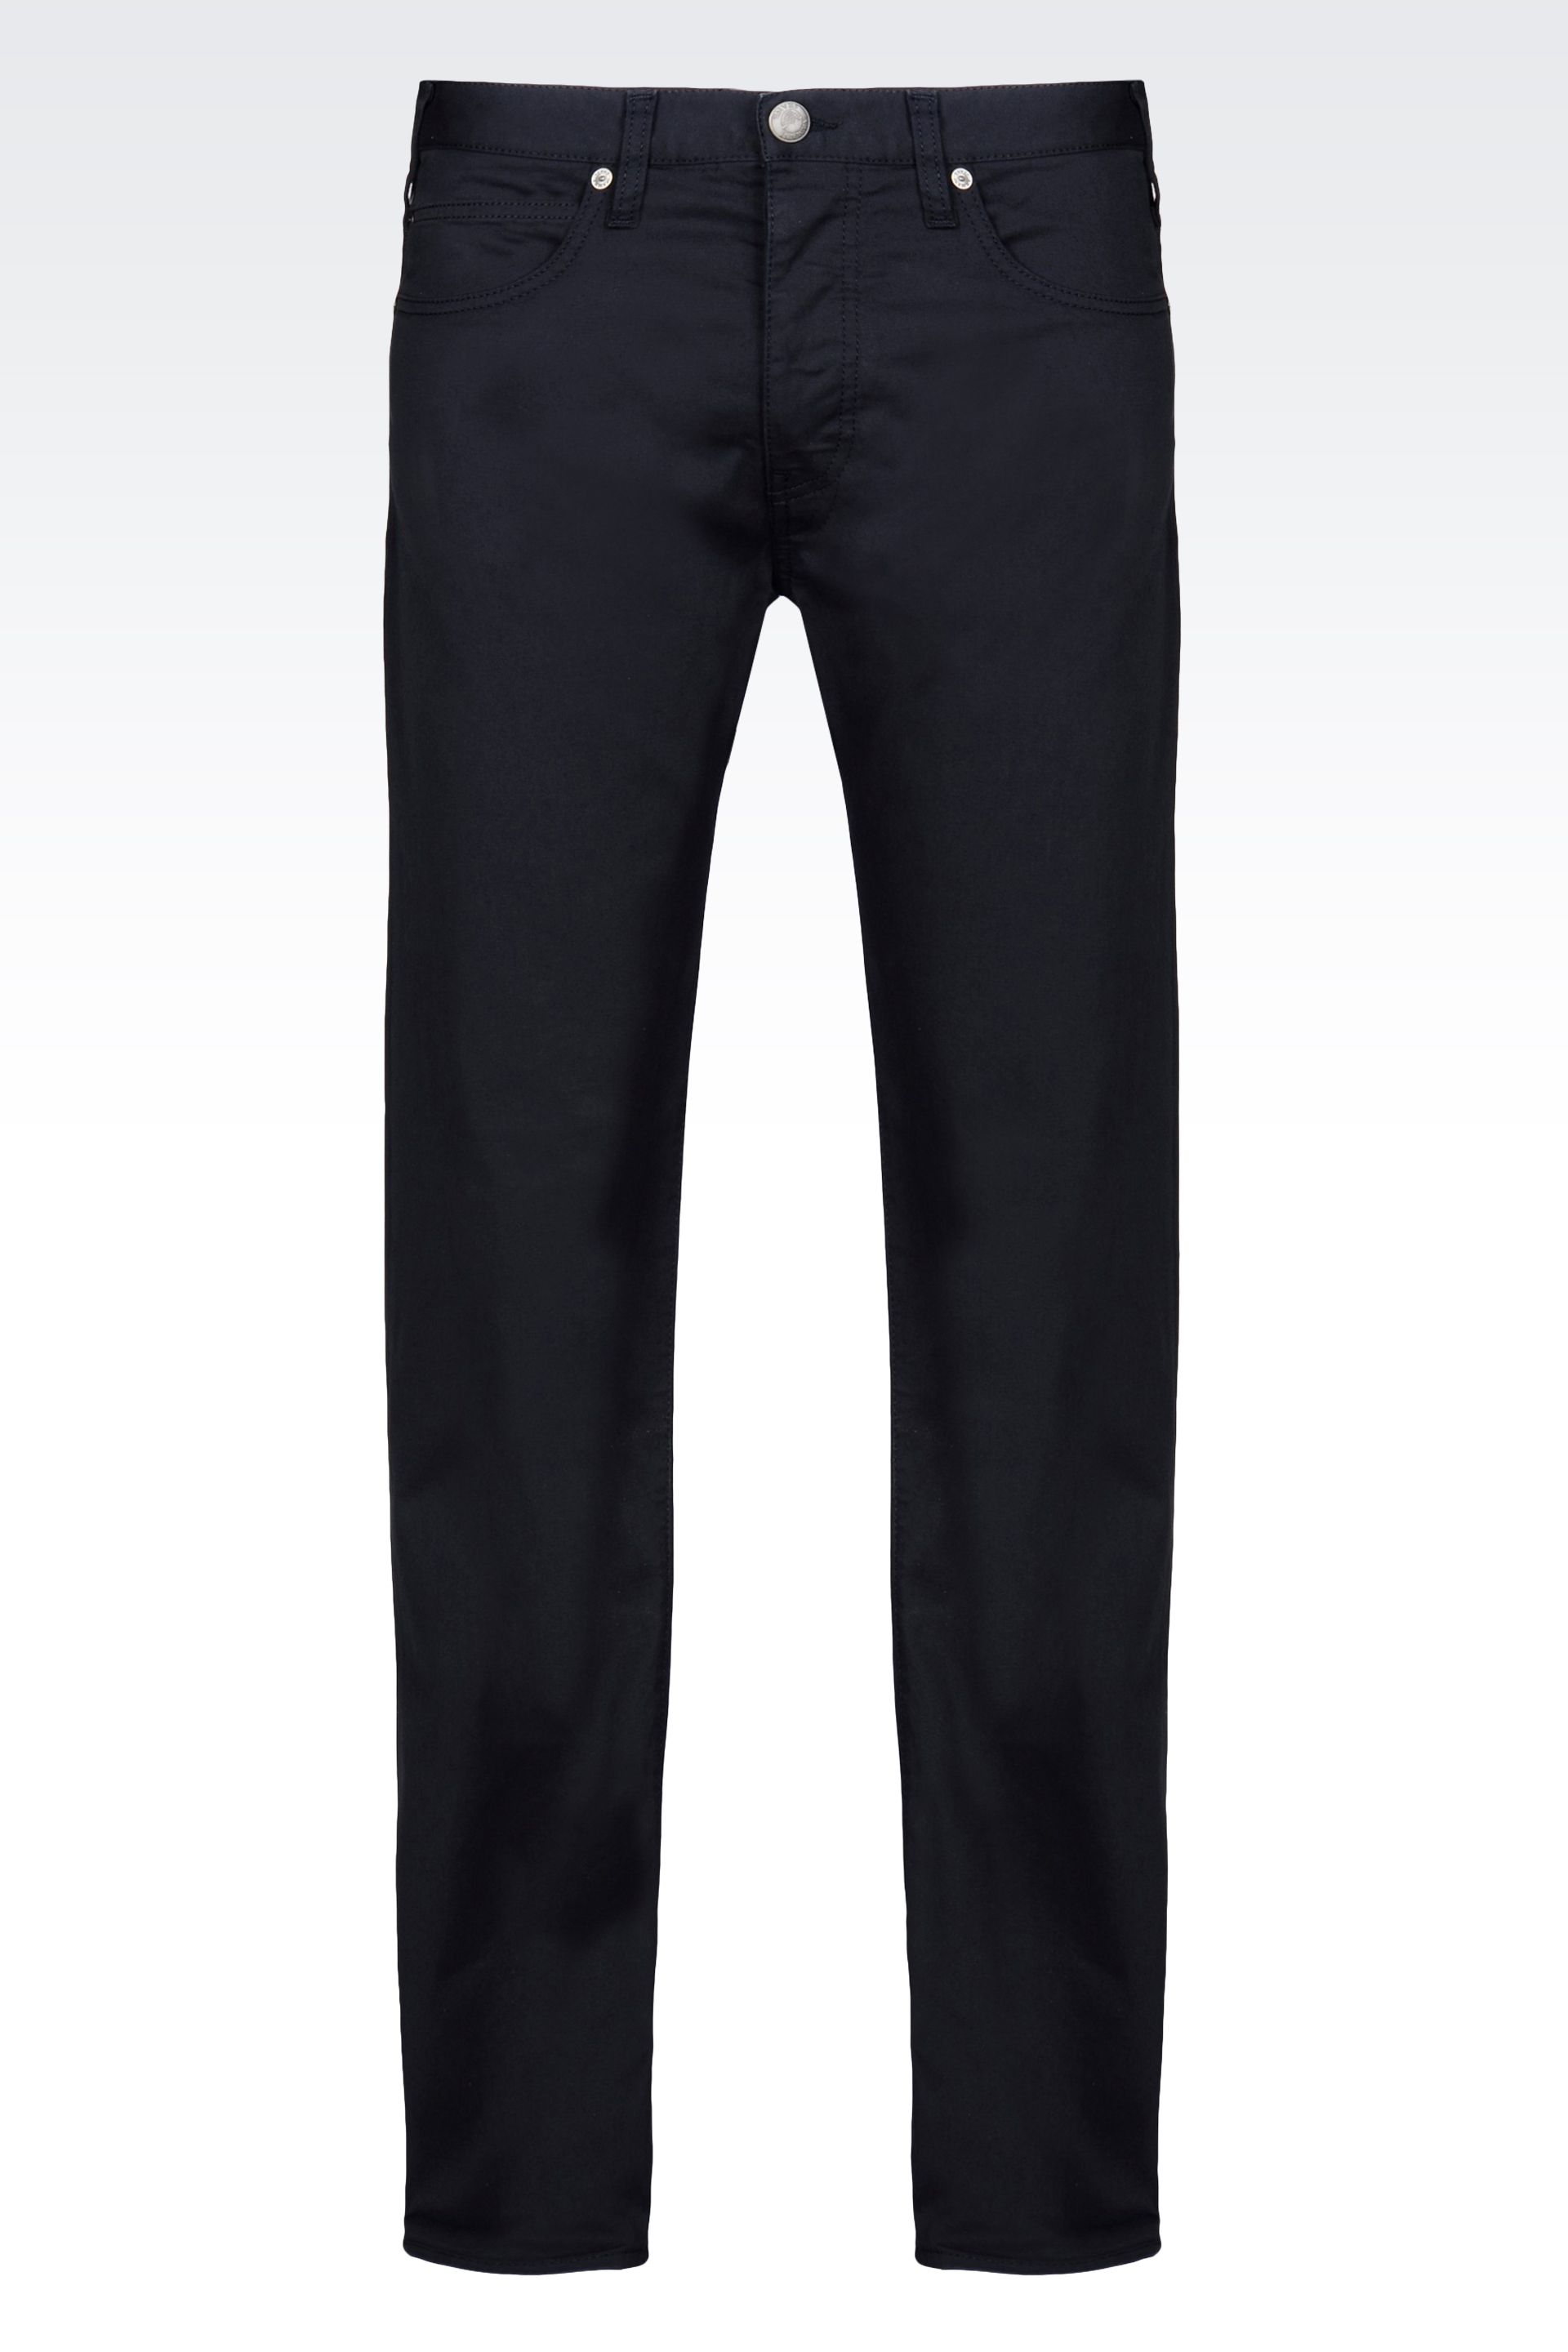 Lyst Armani Jeans 5 Pocket Trousers In Stretch Cotton